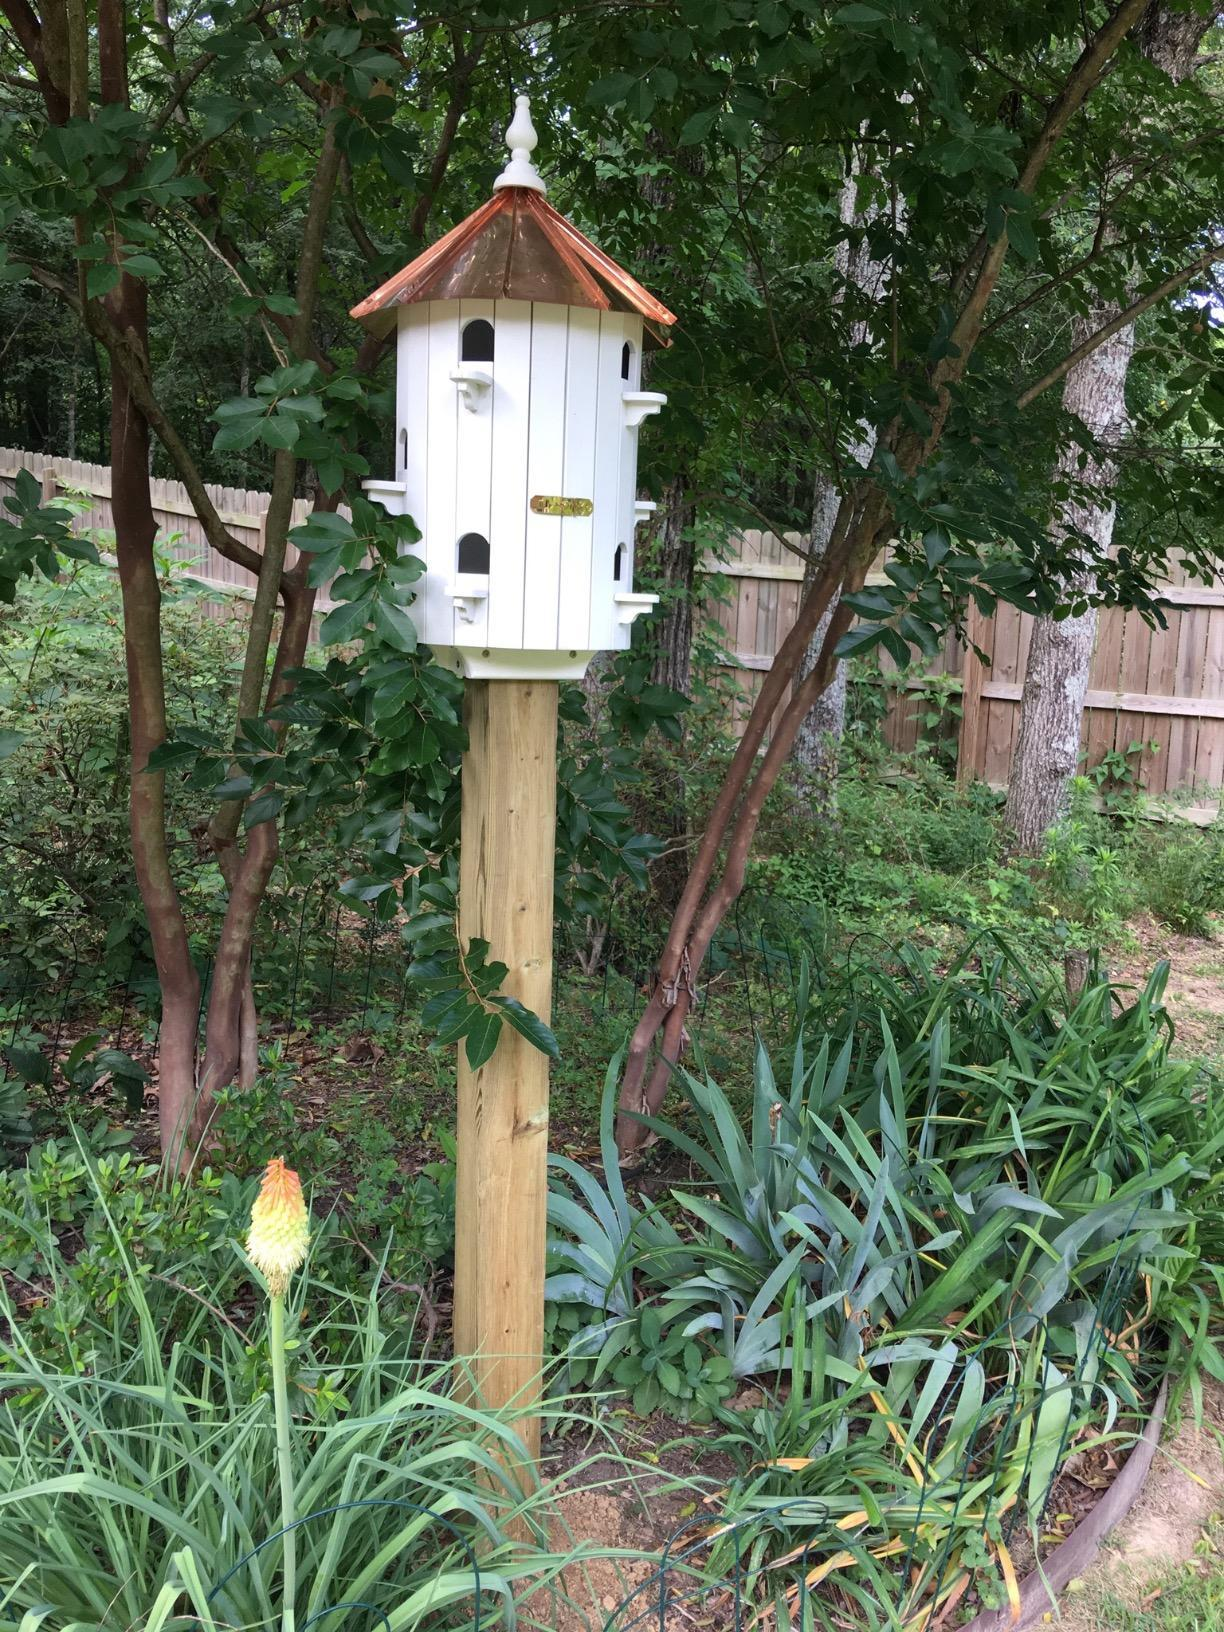 Amish Purple Martin birdhouse is very beautifully buid, This birdhouse have the capacity for 10 martin familes. This birdhouse is very cool looking and it can be mounted on 3.5 by 3.5 wooden post